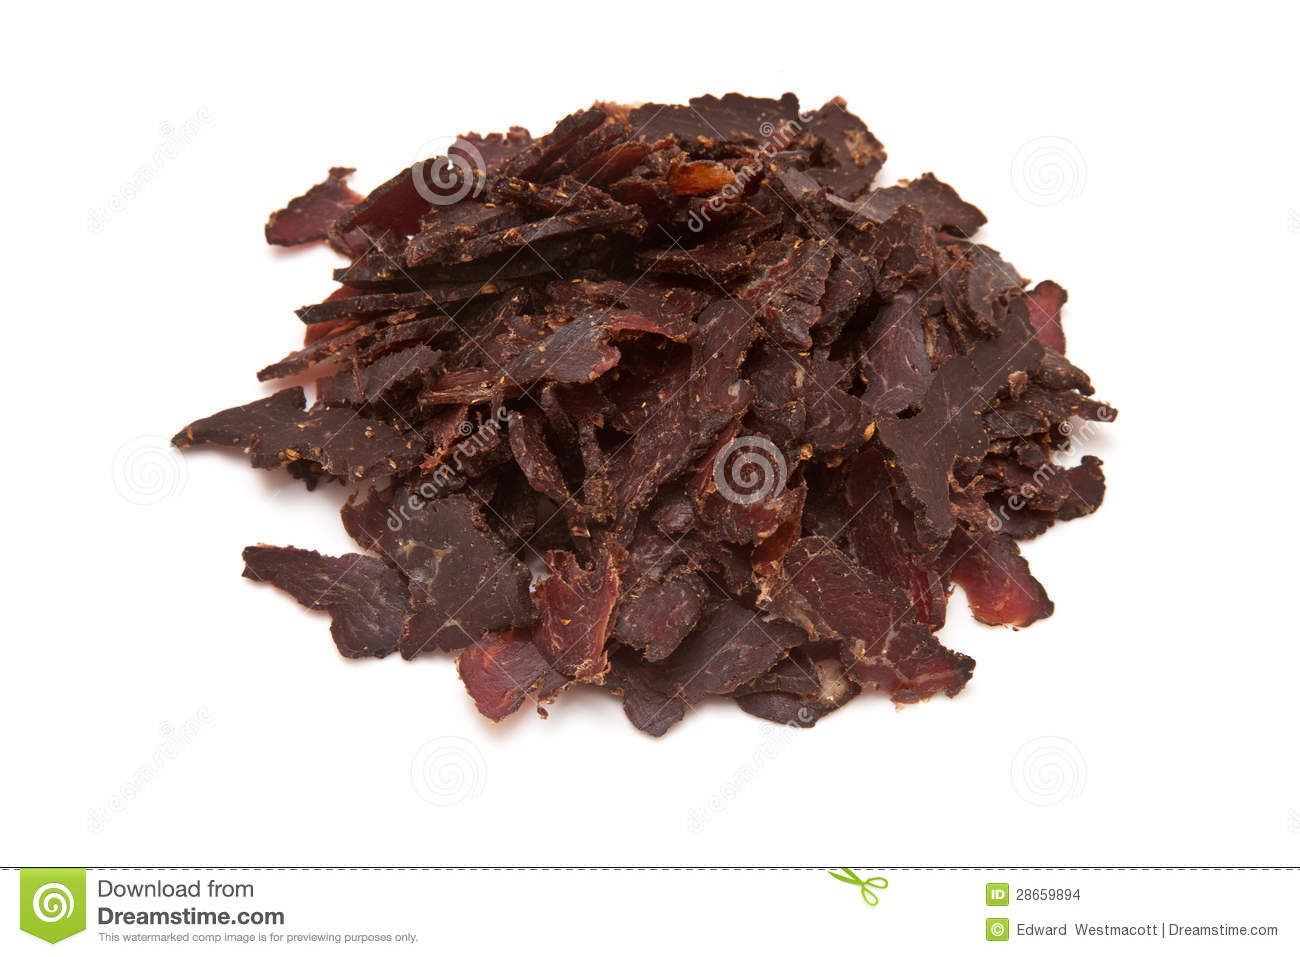 Starting a Jerky Business